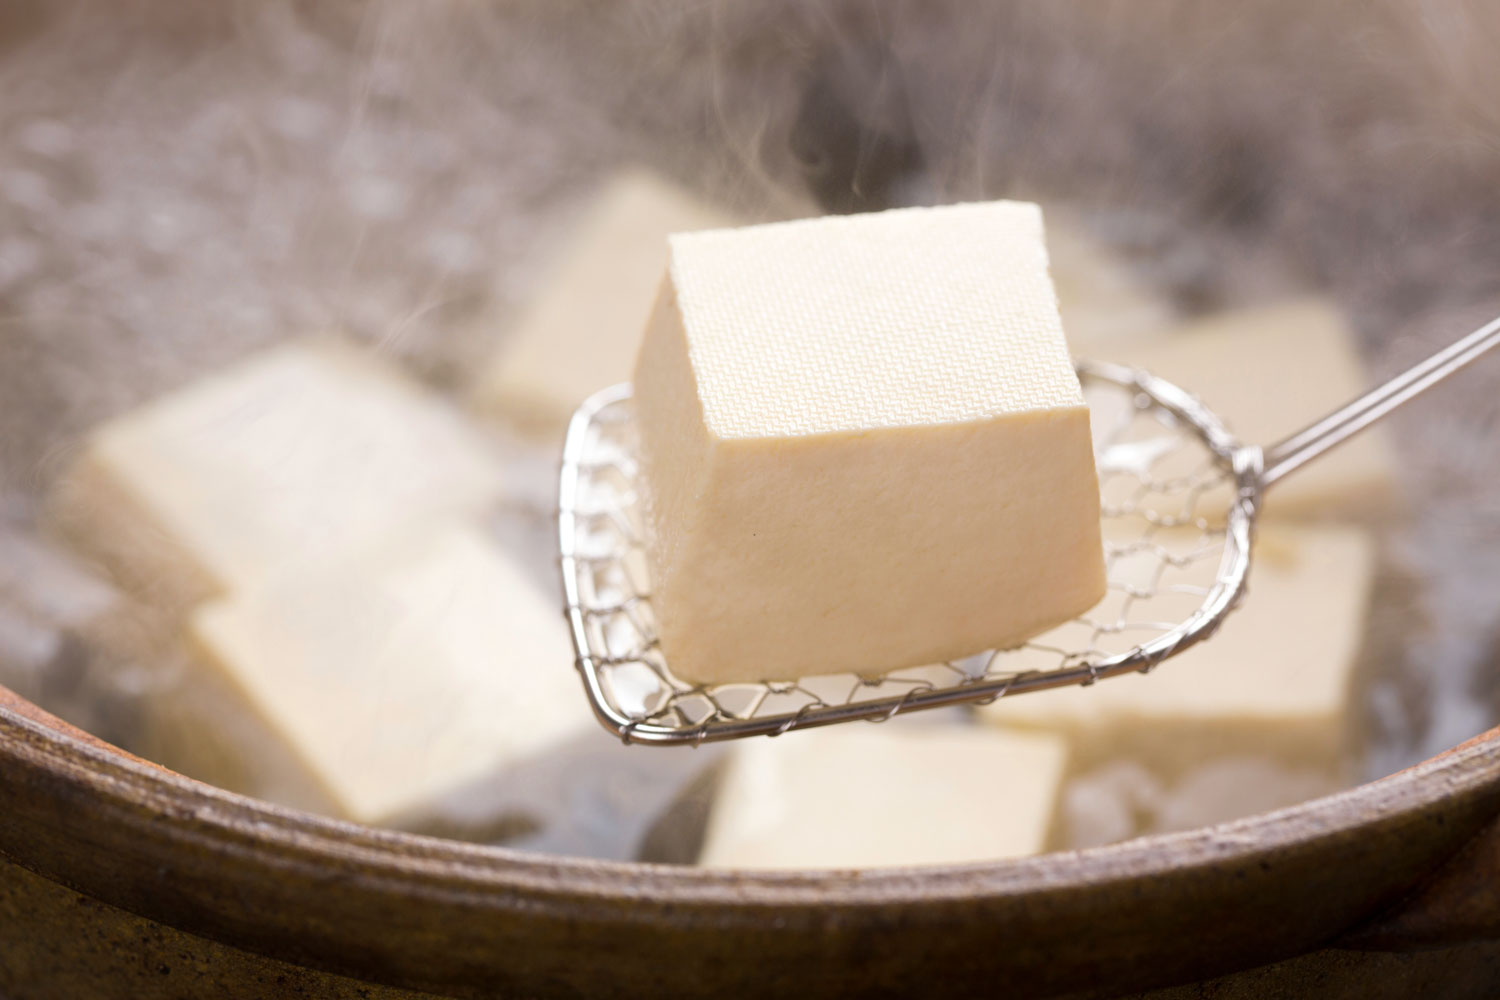 How to Store & Cook Tofu Like a Pro